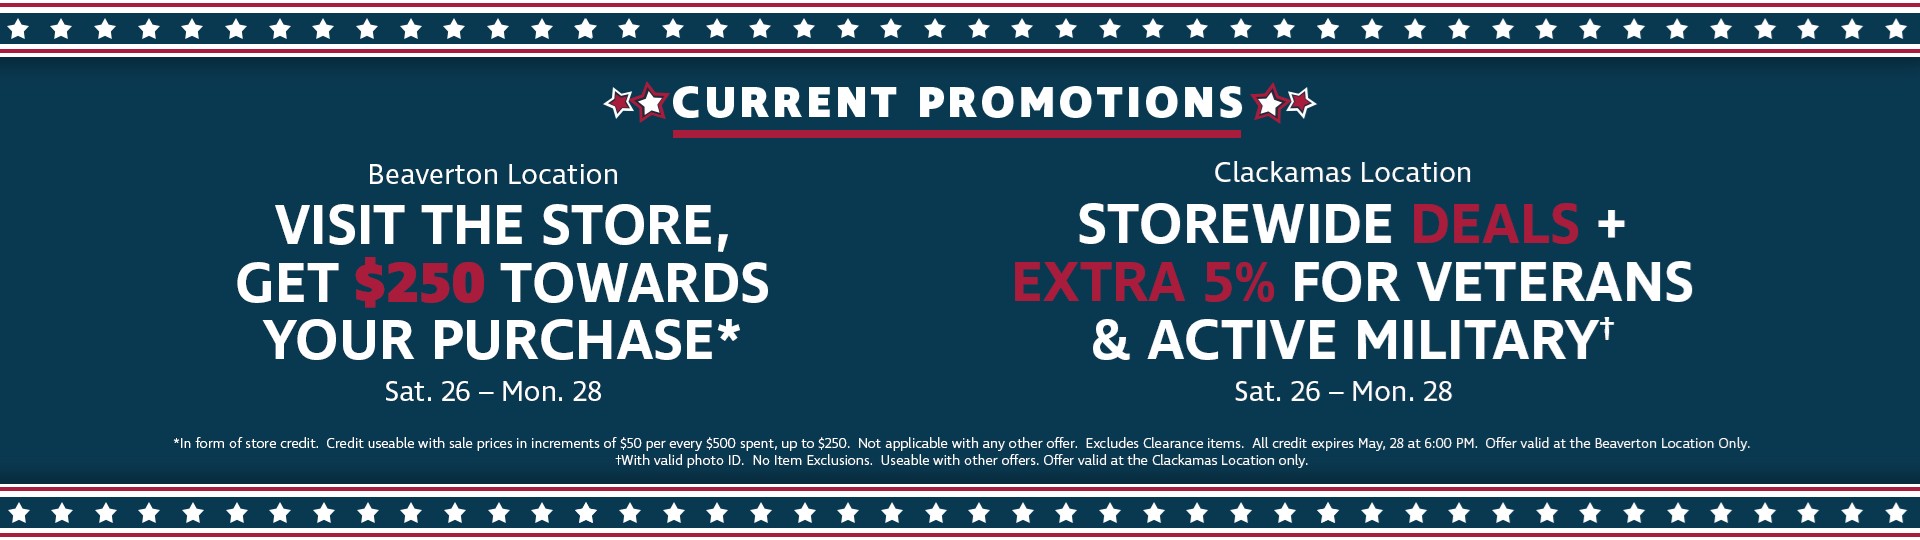 Memorial Day Weekend Deals - Beaverton: Get $250 towards your purchase on top of sale prices!  Clackamas:  Great Storewide deals plus Veterans and Active Military get EXTRA 5% OFF